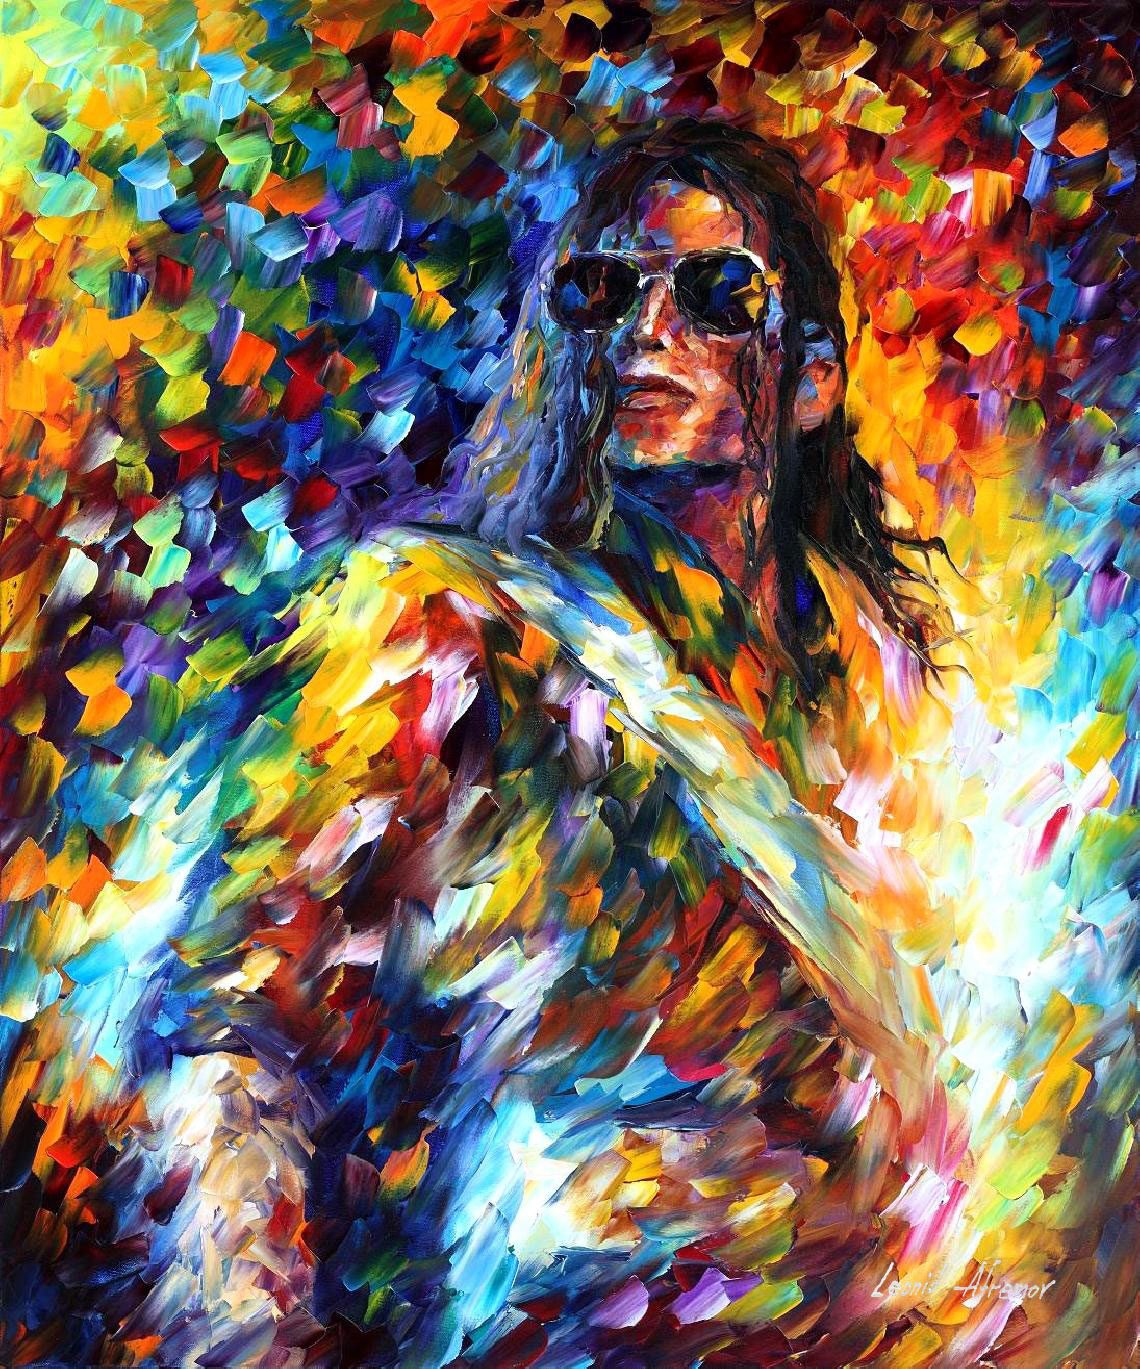 "MICHAEL JACKSON — PALETTE KNIFE Oil Painting On Canvas By Leonid Afremov - Size 30""x36"" (75cm x 90cm) (offer)"